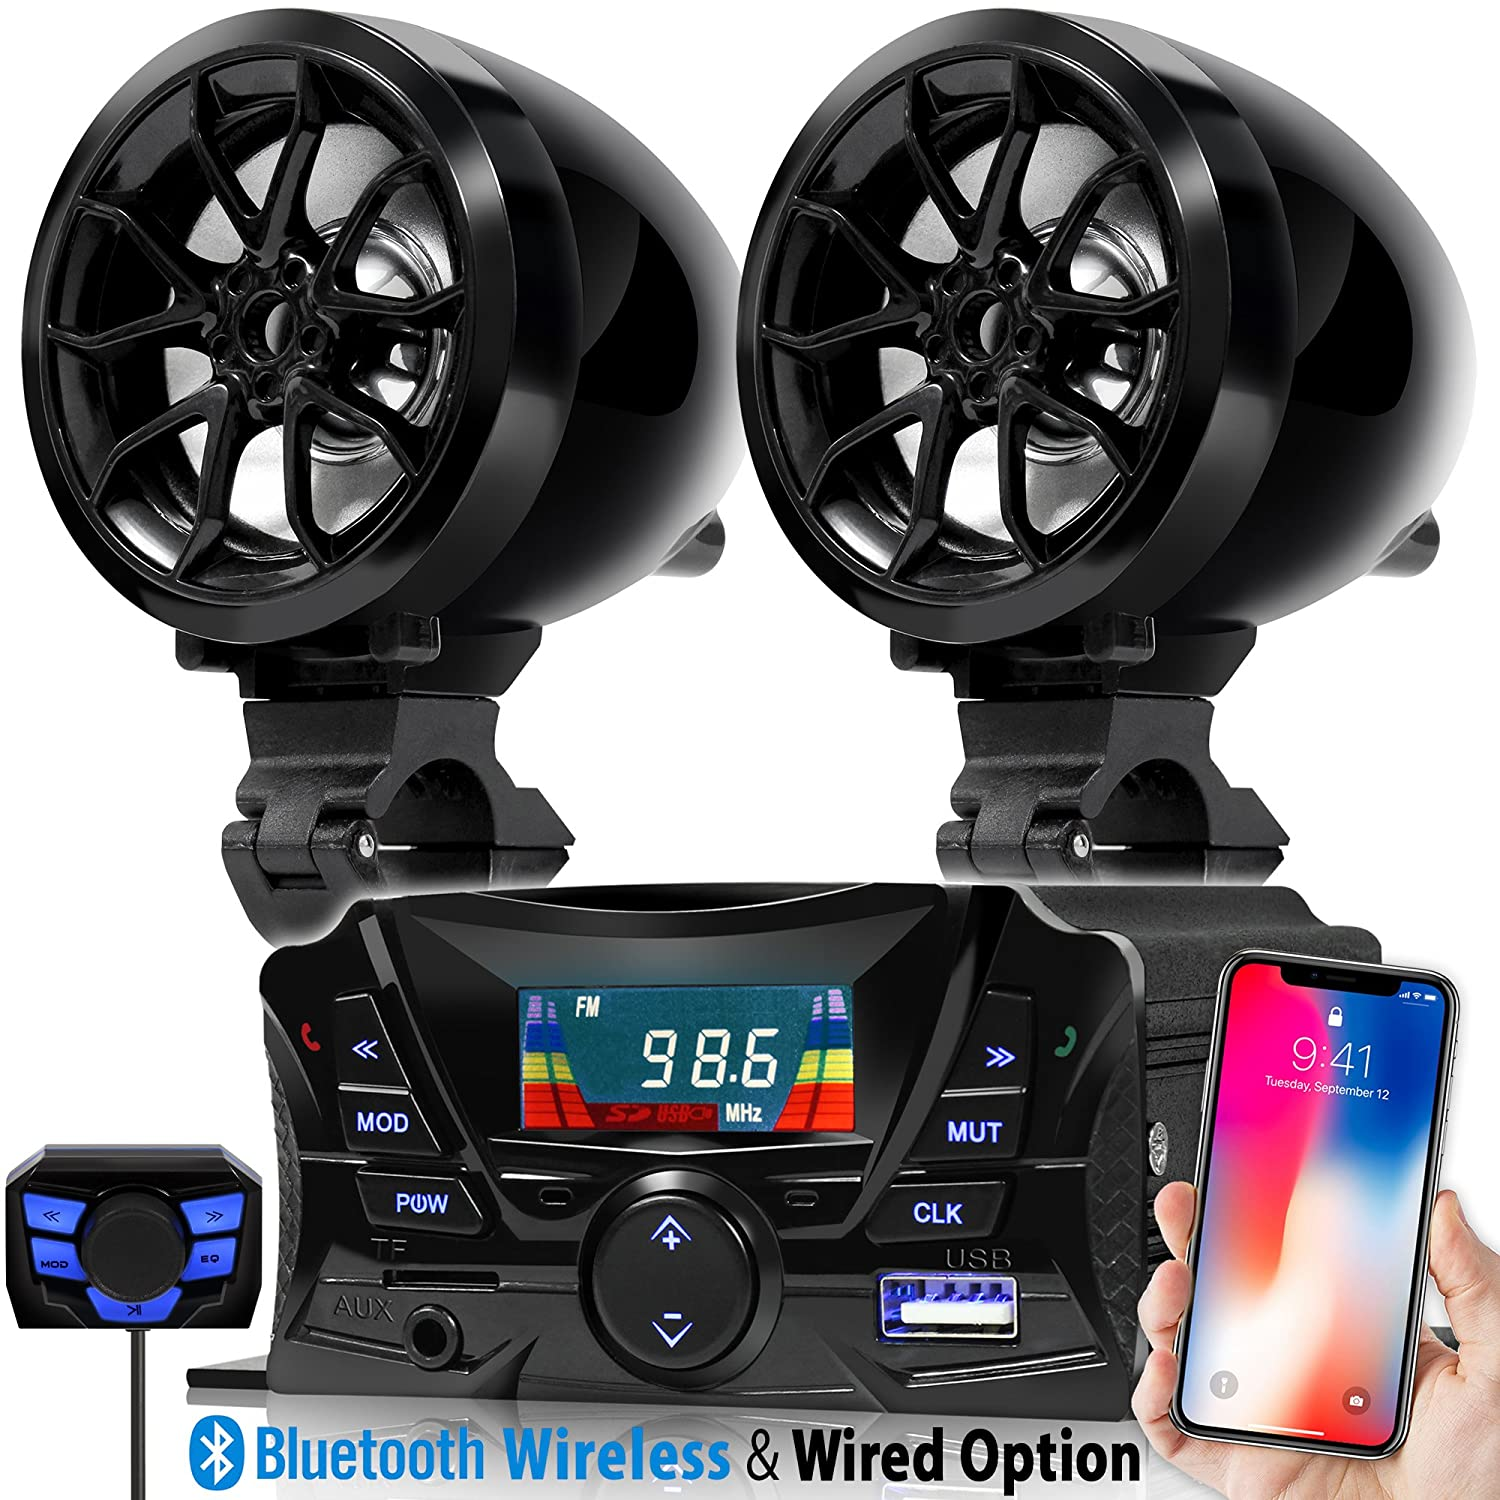 GoldenHawk USA 3' Motorcycle Waterproof Bluetooth Wireless Speaker 7/8-1 in. Handlebar Mount MP3 Music Player Sound Audio Stereo Amplifier System ATV UTV w/3.5mm AUX in, USB 2.0, Micro SD, FM Radio Golden Hawk USA